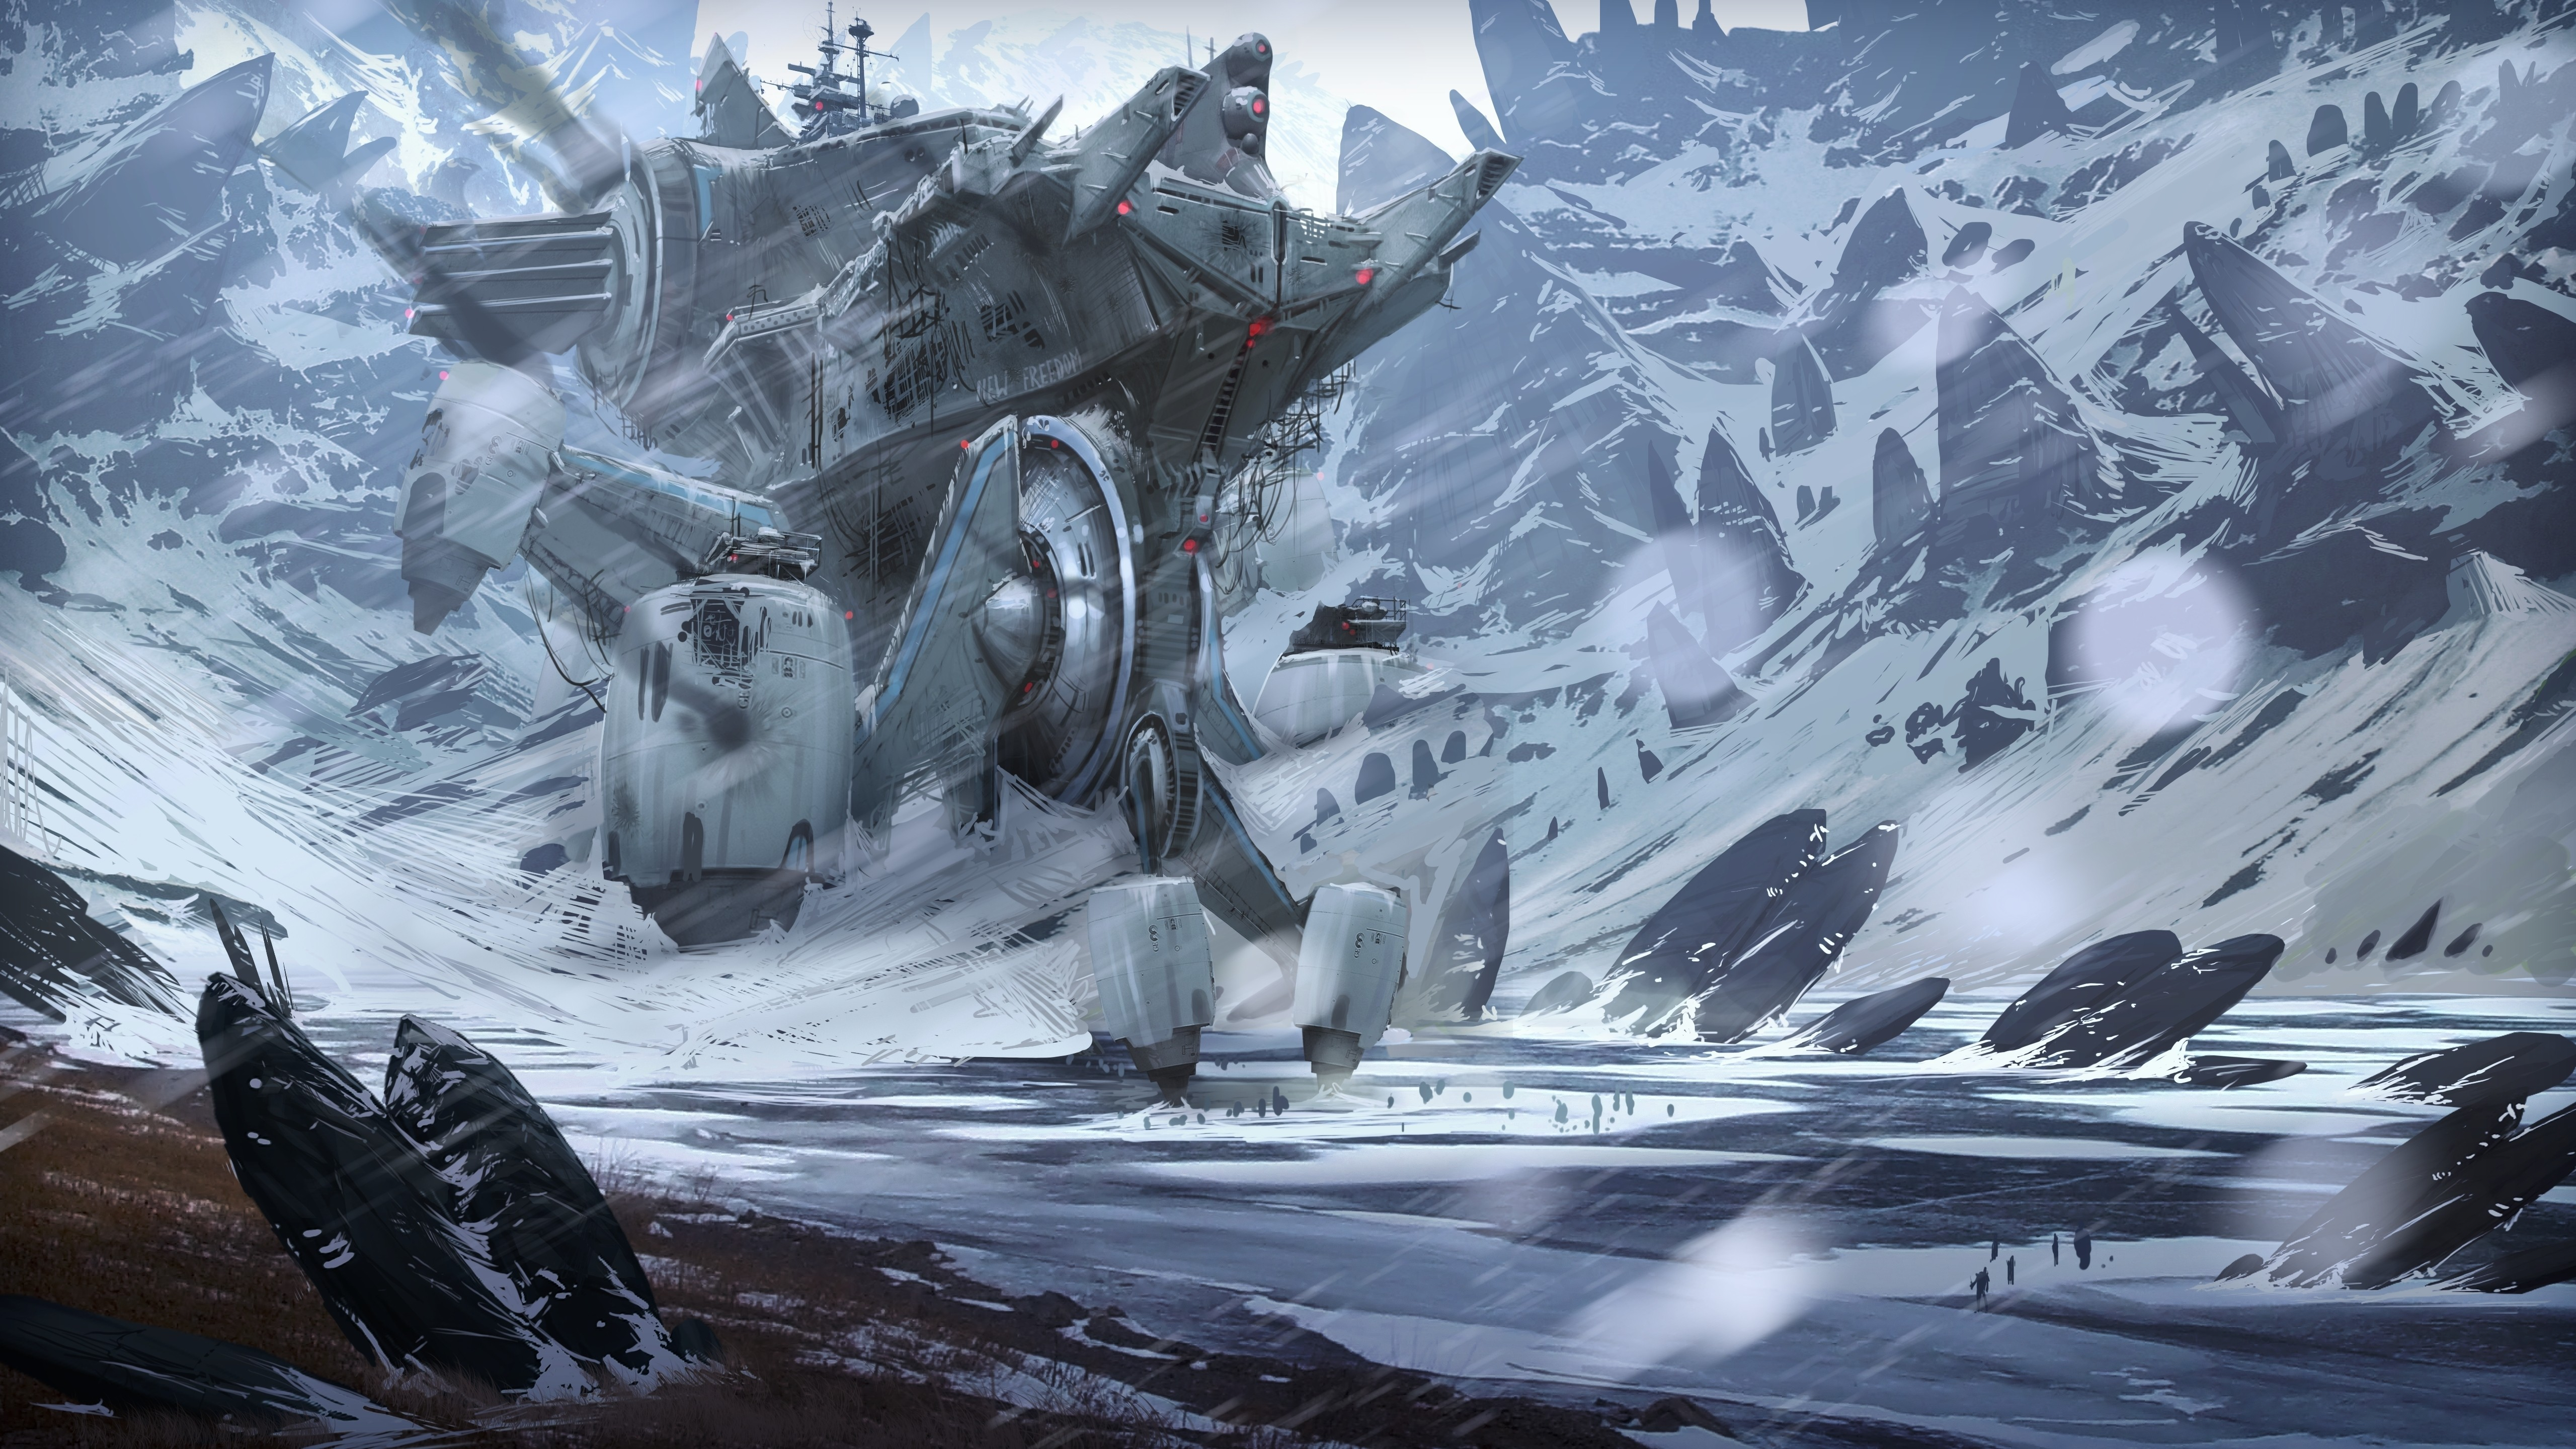 Must see Wallpaper Mountain Sci Fi - mountains-snow-futuristic-fantasy-art-artwork-5120x2880-wallpaper  Pictures_433463.jpg